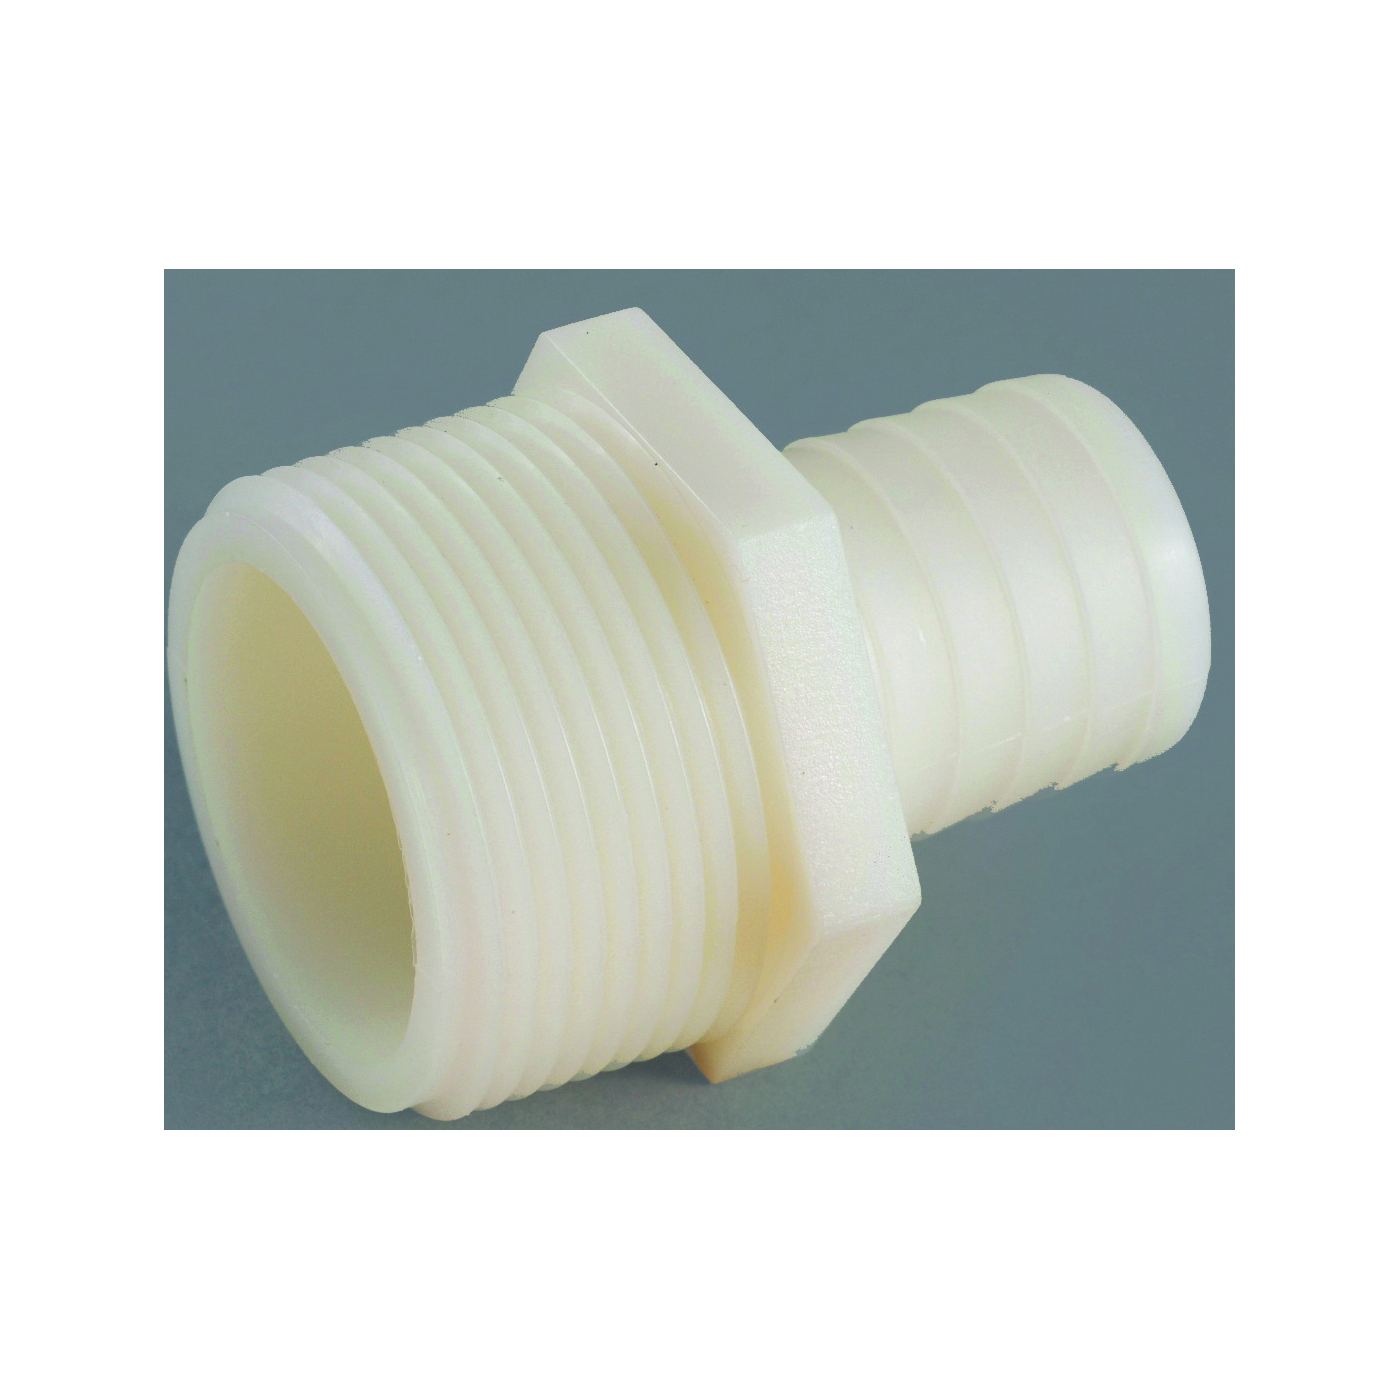 Picture of Anderson Metals 53701-0504 Hose Adapter, 1/4 in, Barb, 5/16 in, MIP, 150 psi Pressure, Nylon